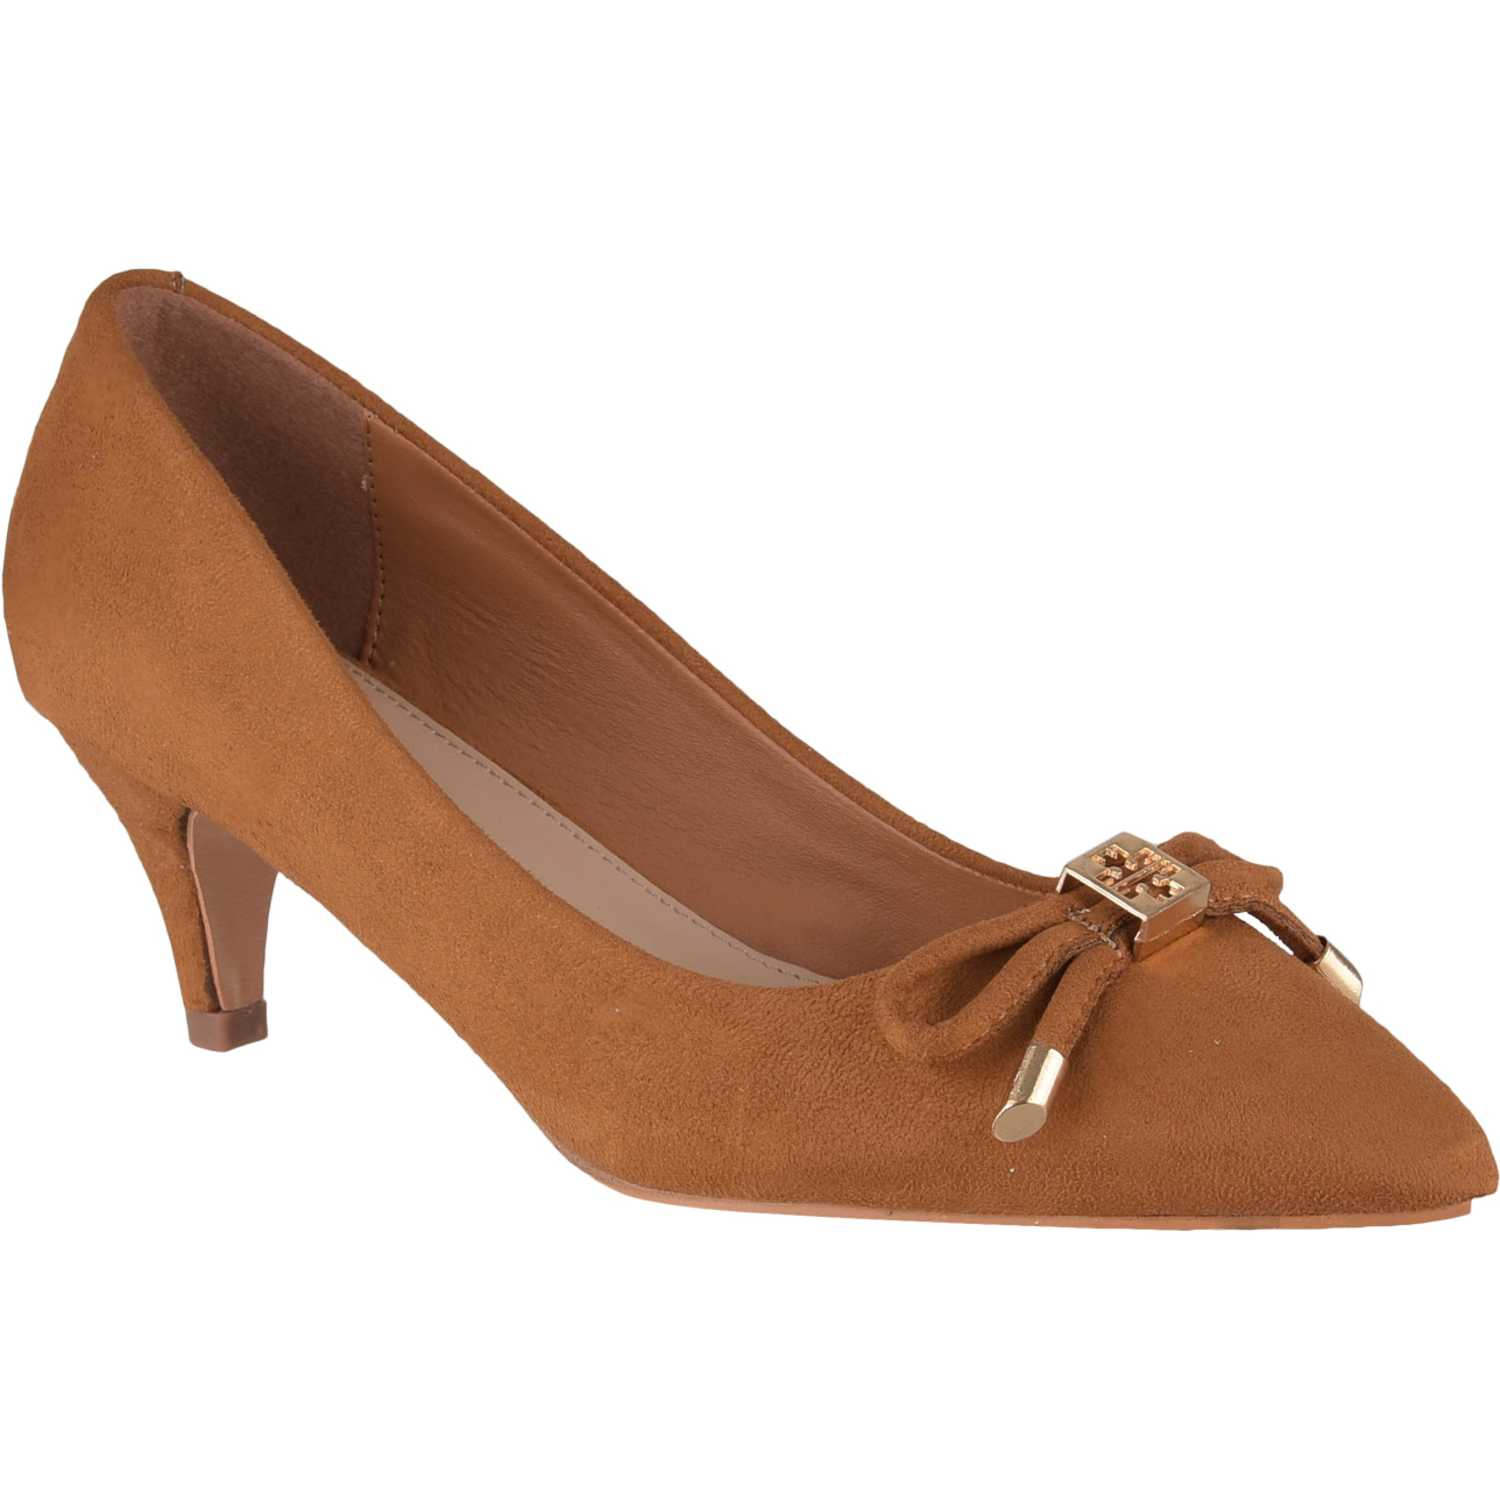 Platanitos cv 4764 Camel Estiletos y Pumps